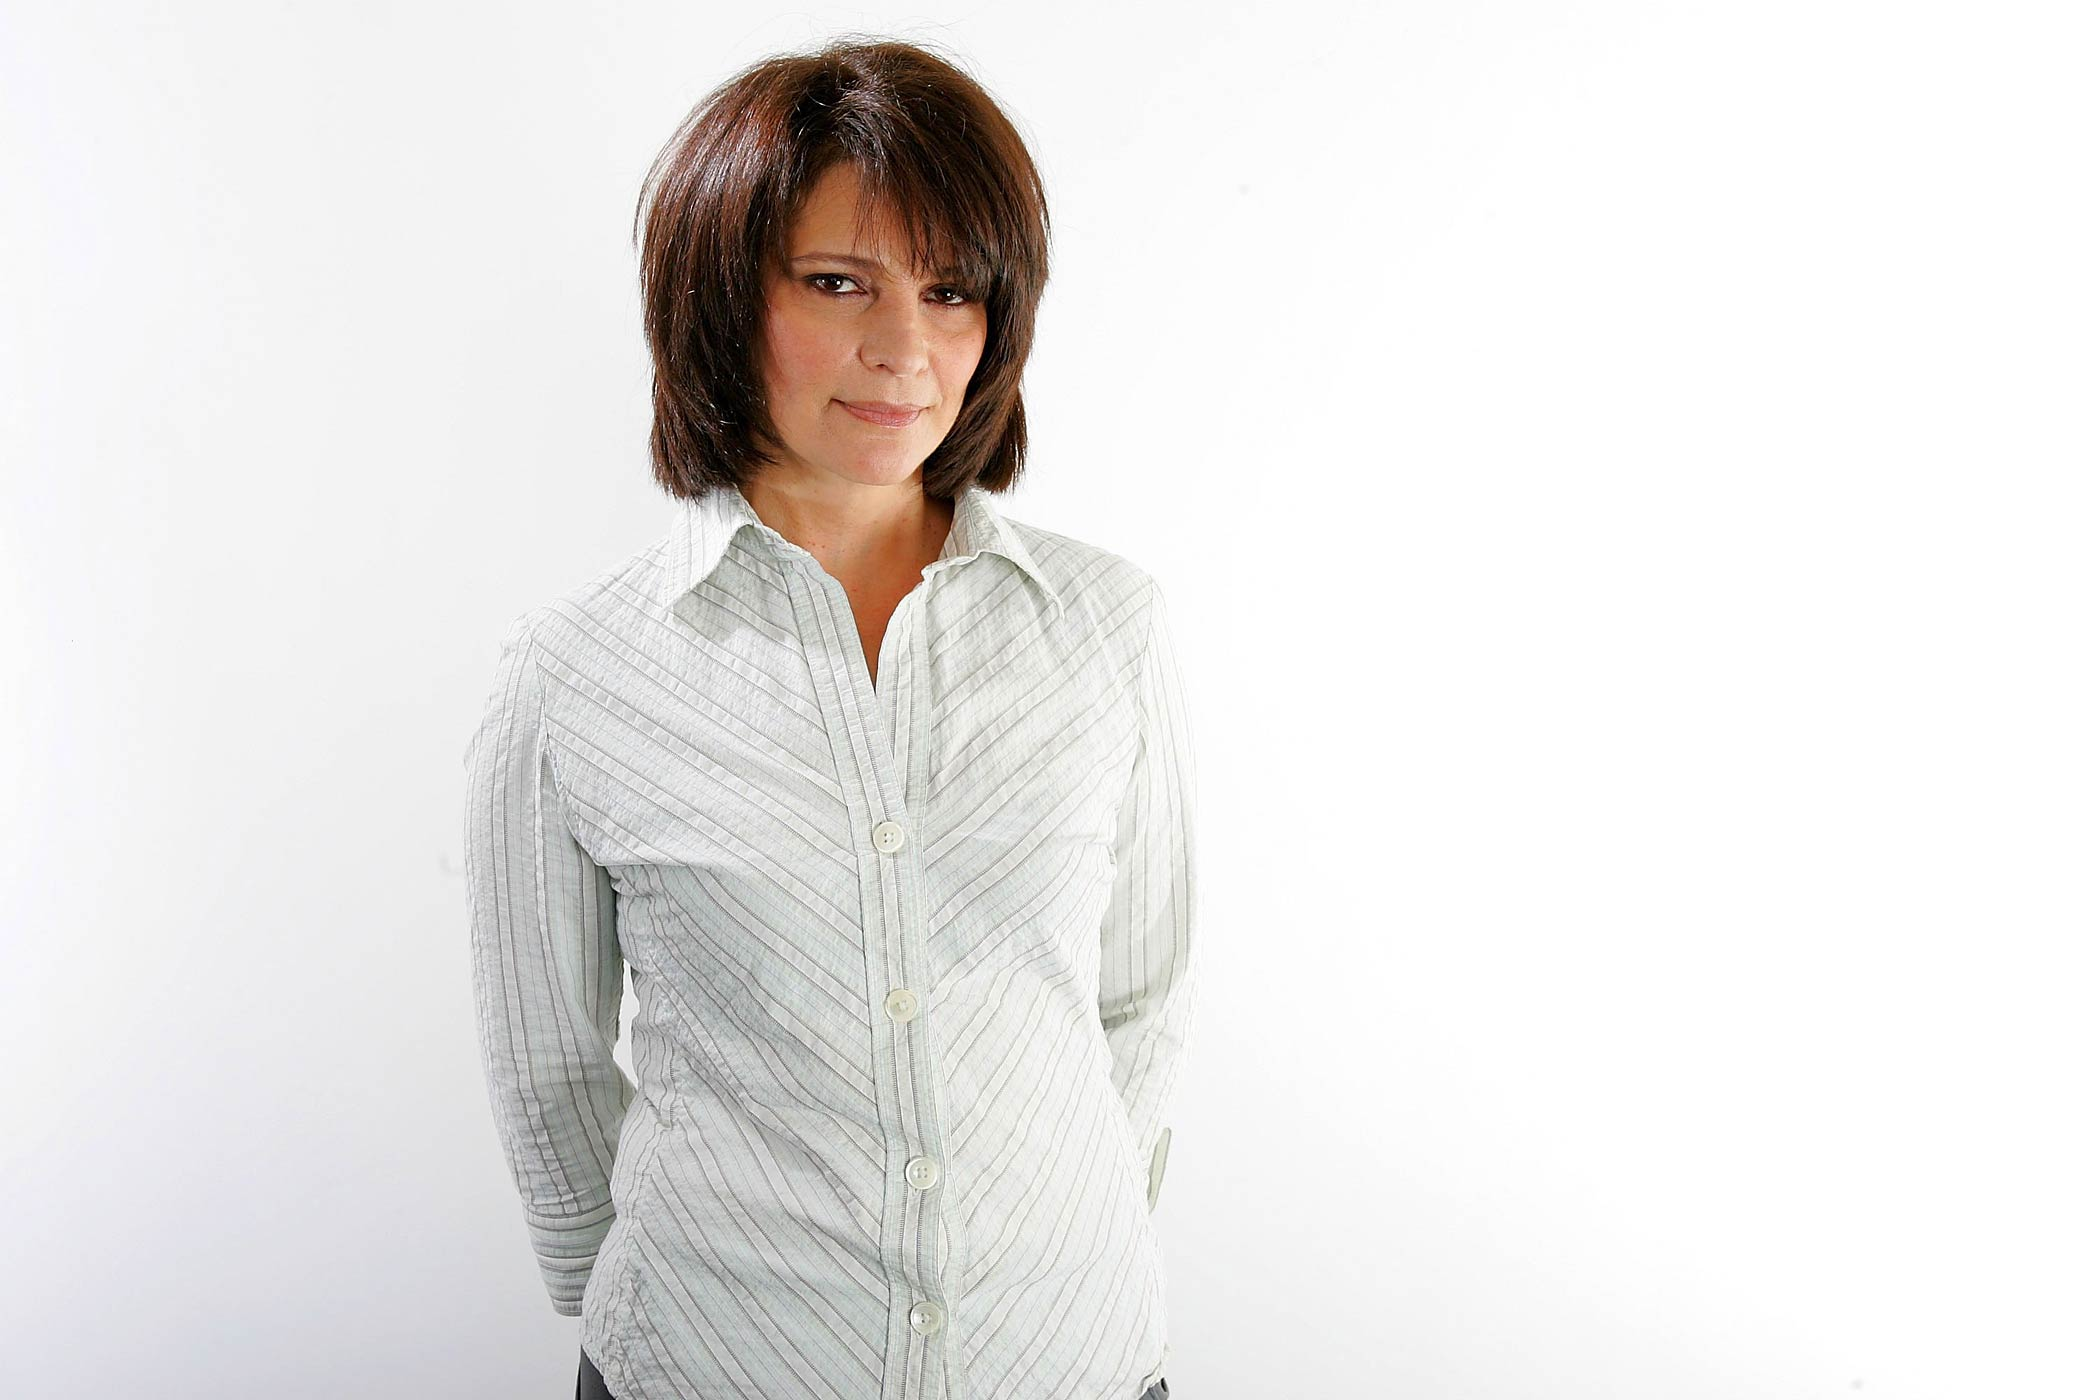 Alberta Watson poses for a portrait in the Chanel Celebrity Suite at the Four Season hotel during the Toronto International Film Festival on Sept. 7, 2006 in Toronto, Canada.